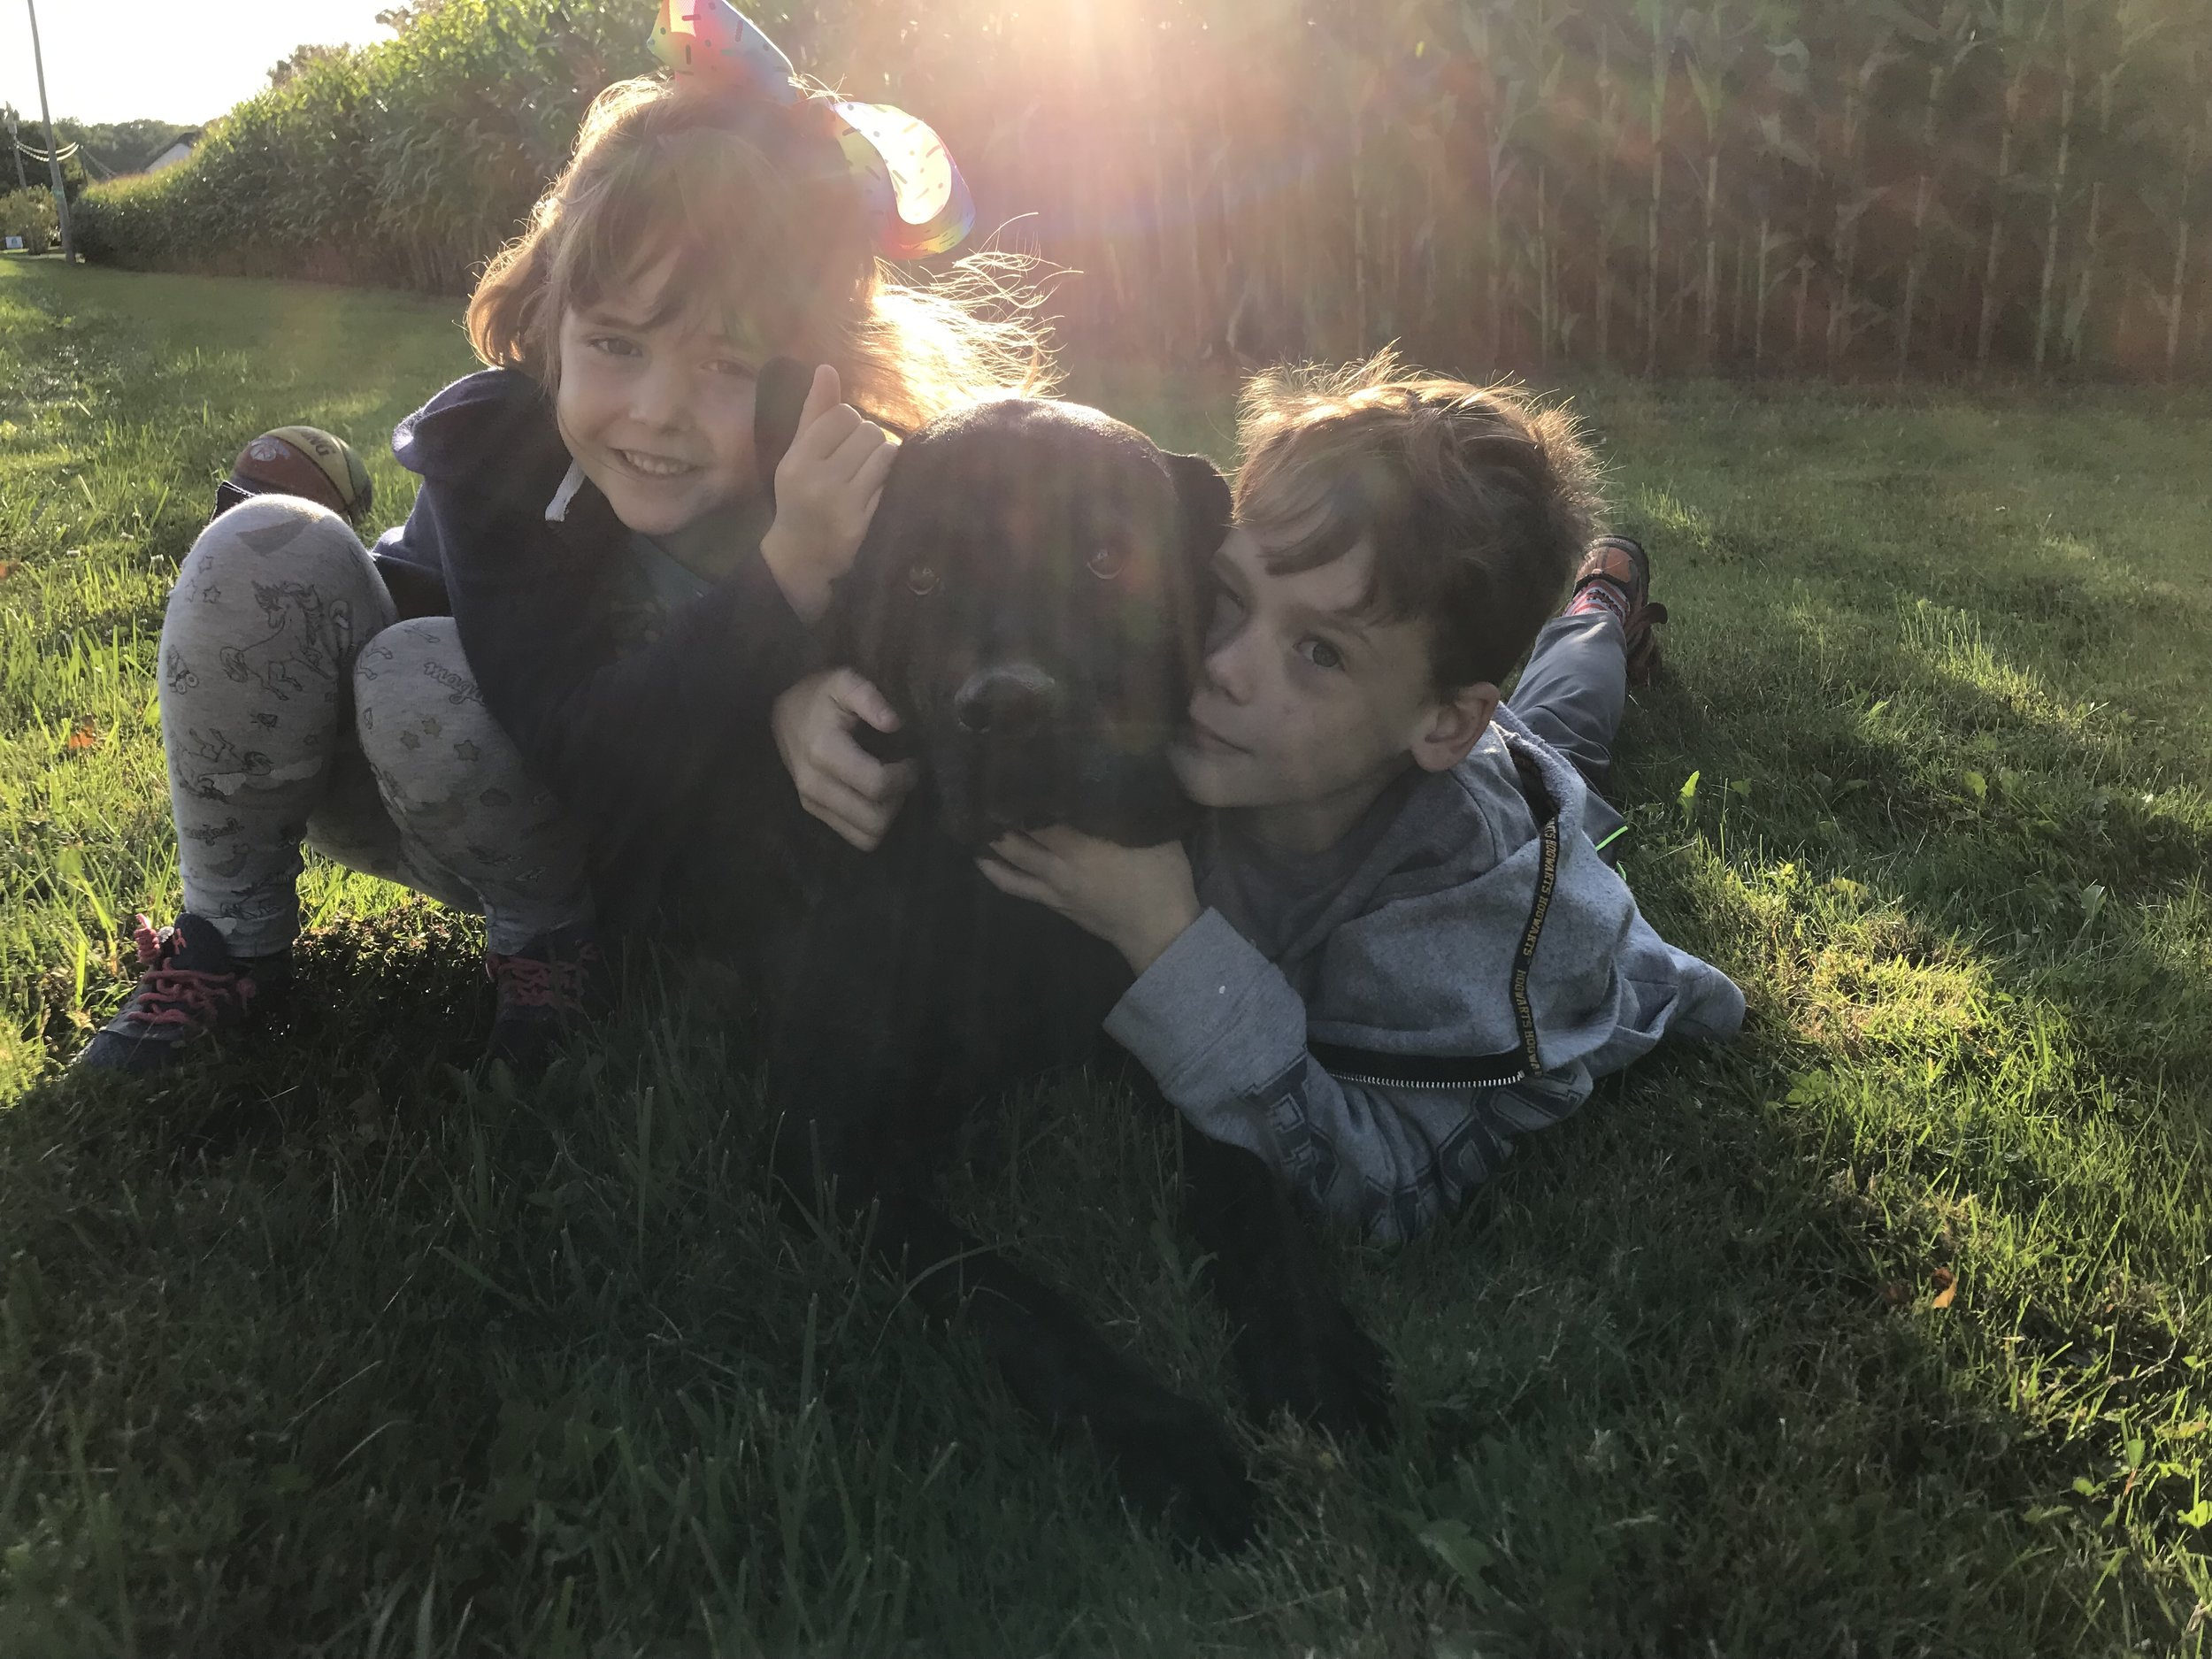 My kiddos with our own Sadie